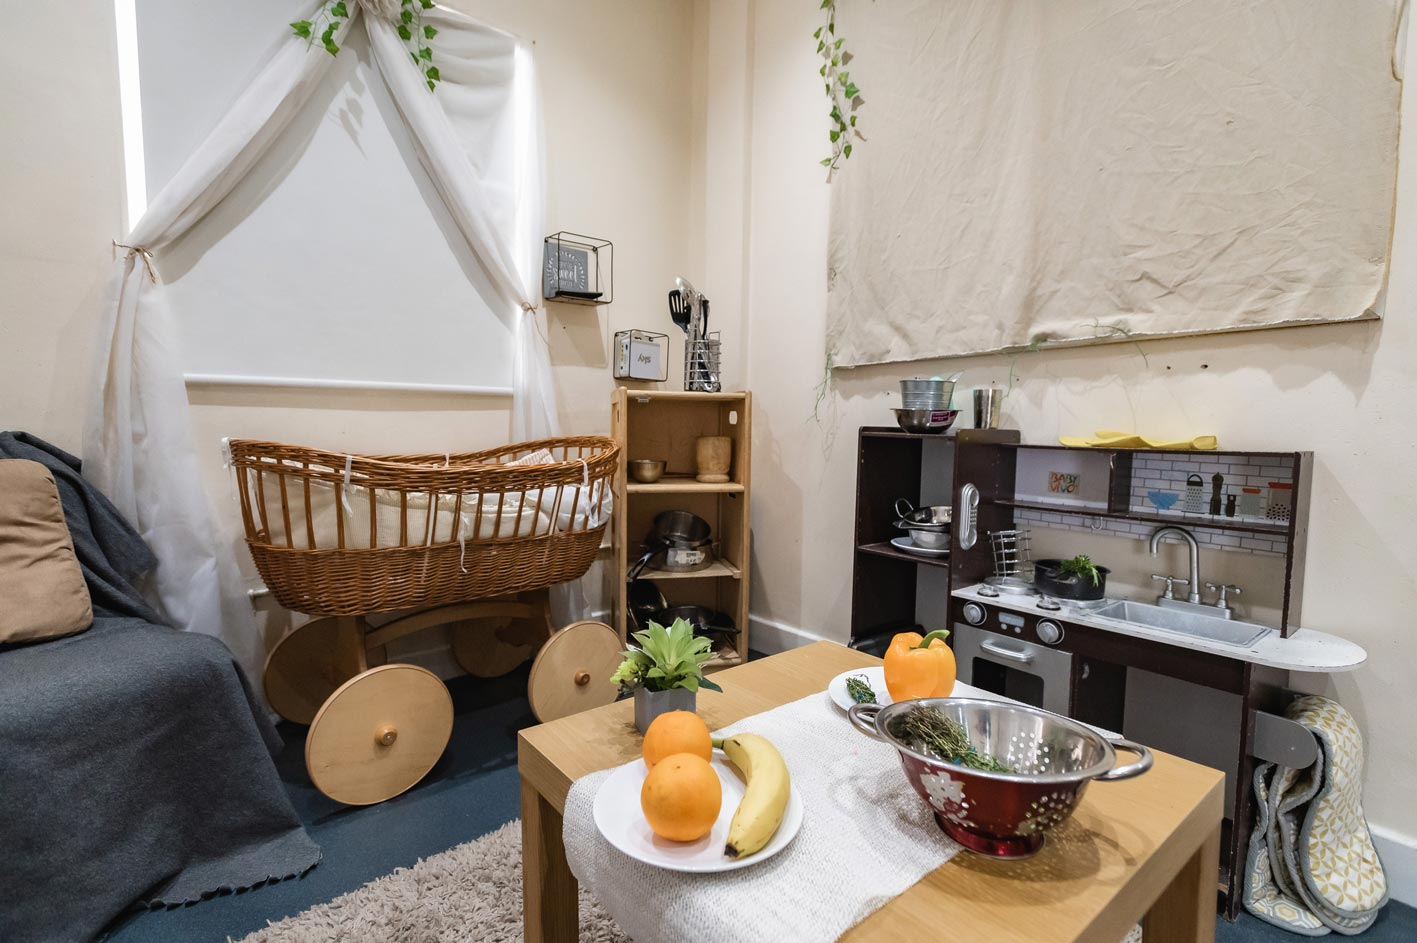 Another kitchen play area.